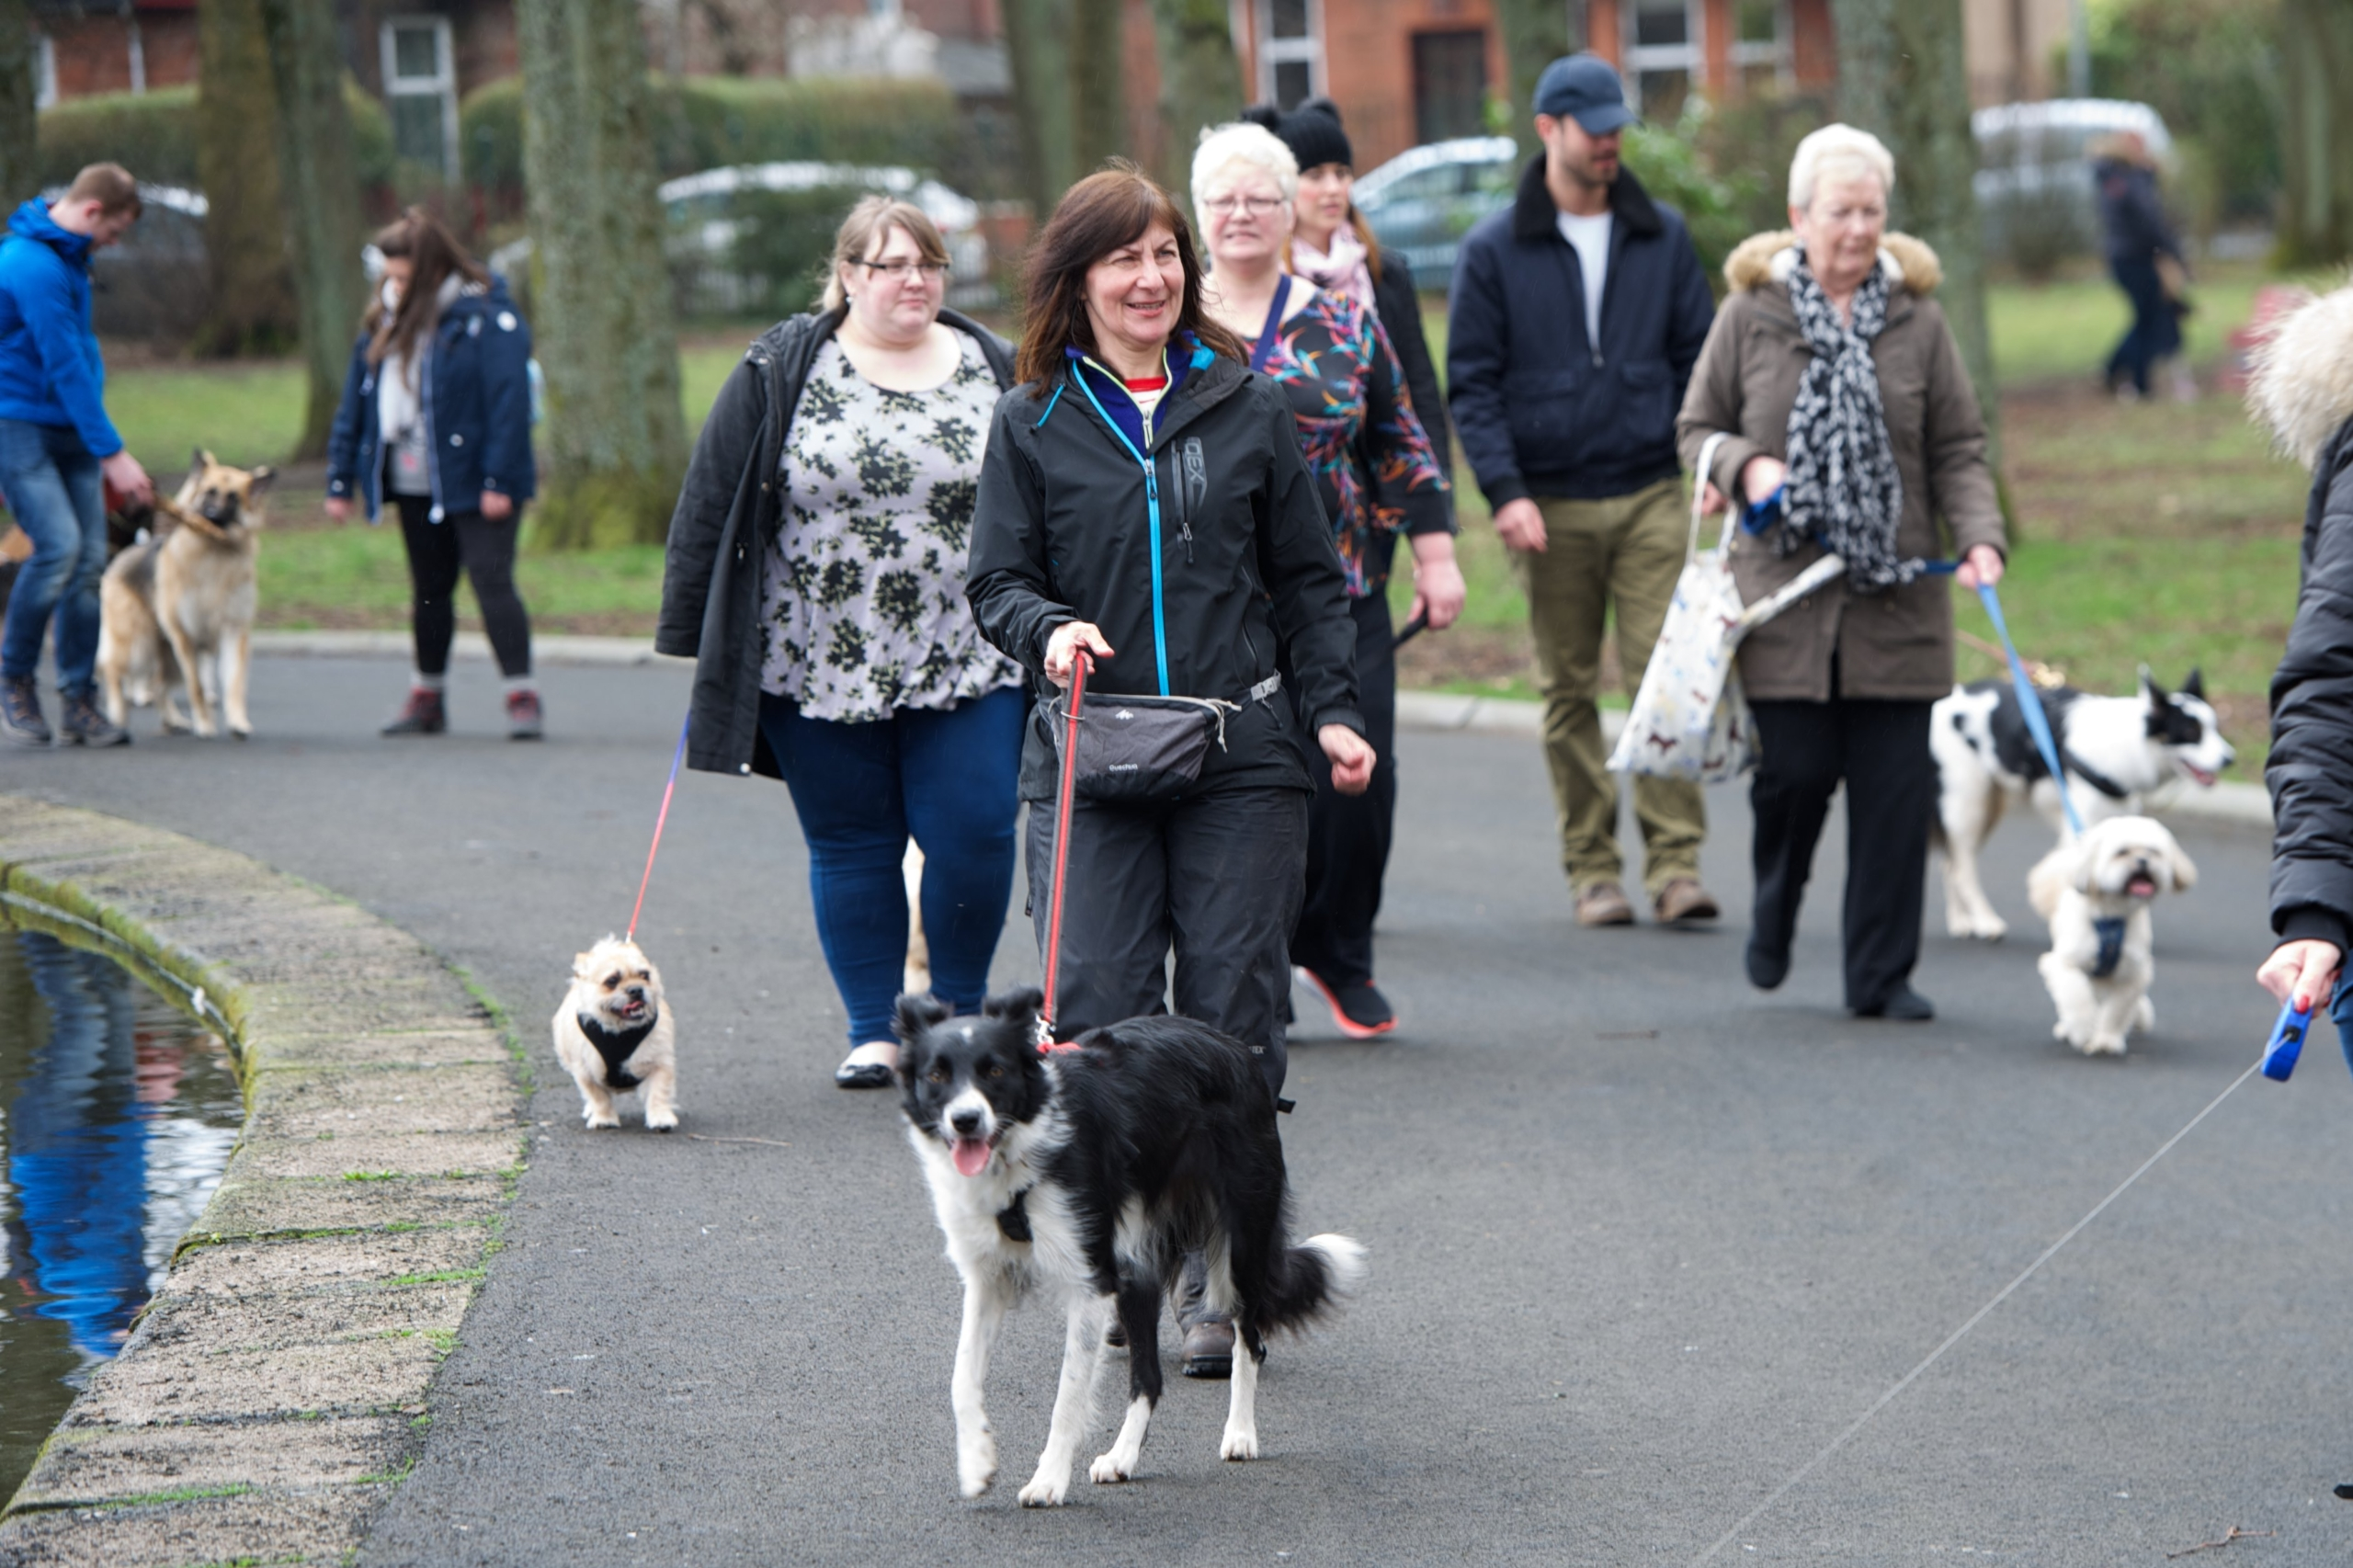 Renfrew Council Responsible Dog Owners Event at Robertson Park 8.4.18